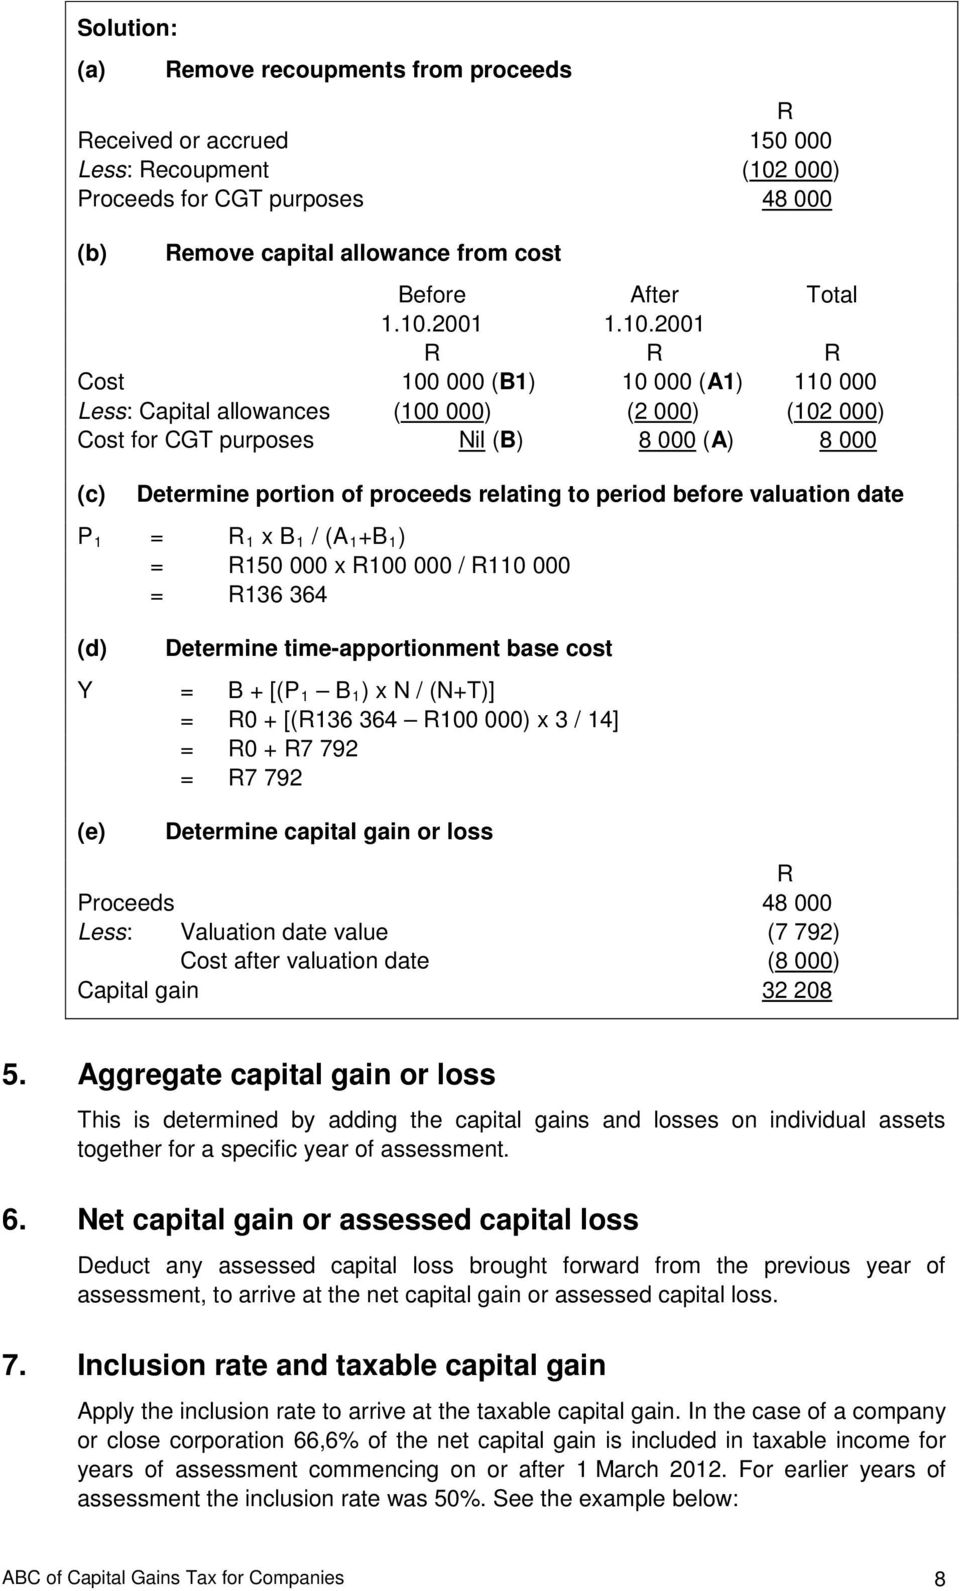 period before valuation date P 1 = R 1 x B 1 / (A 1 +B 1 ) = R150 000 x R100 000 / R110 000 = R136 364 (d) Determine time-apportionment base cost Y = B + [(P 1 B 1 ) x N / (N+T)] = R0 + [(R136 364